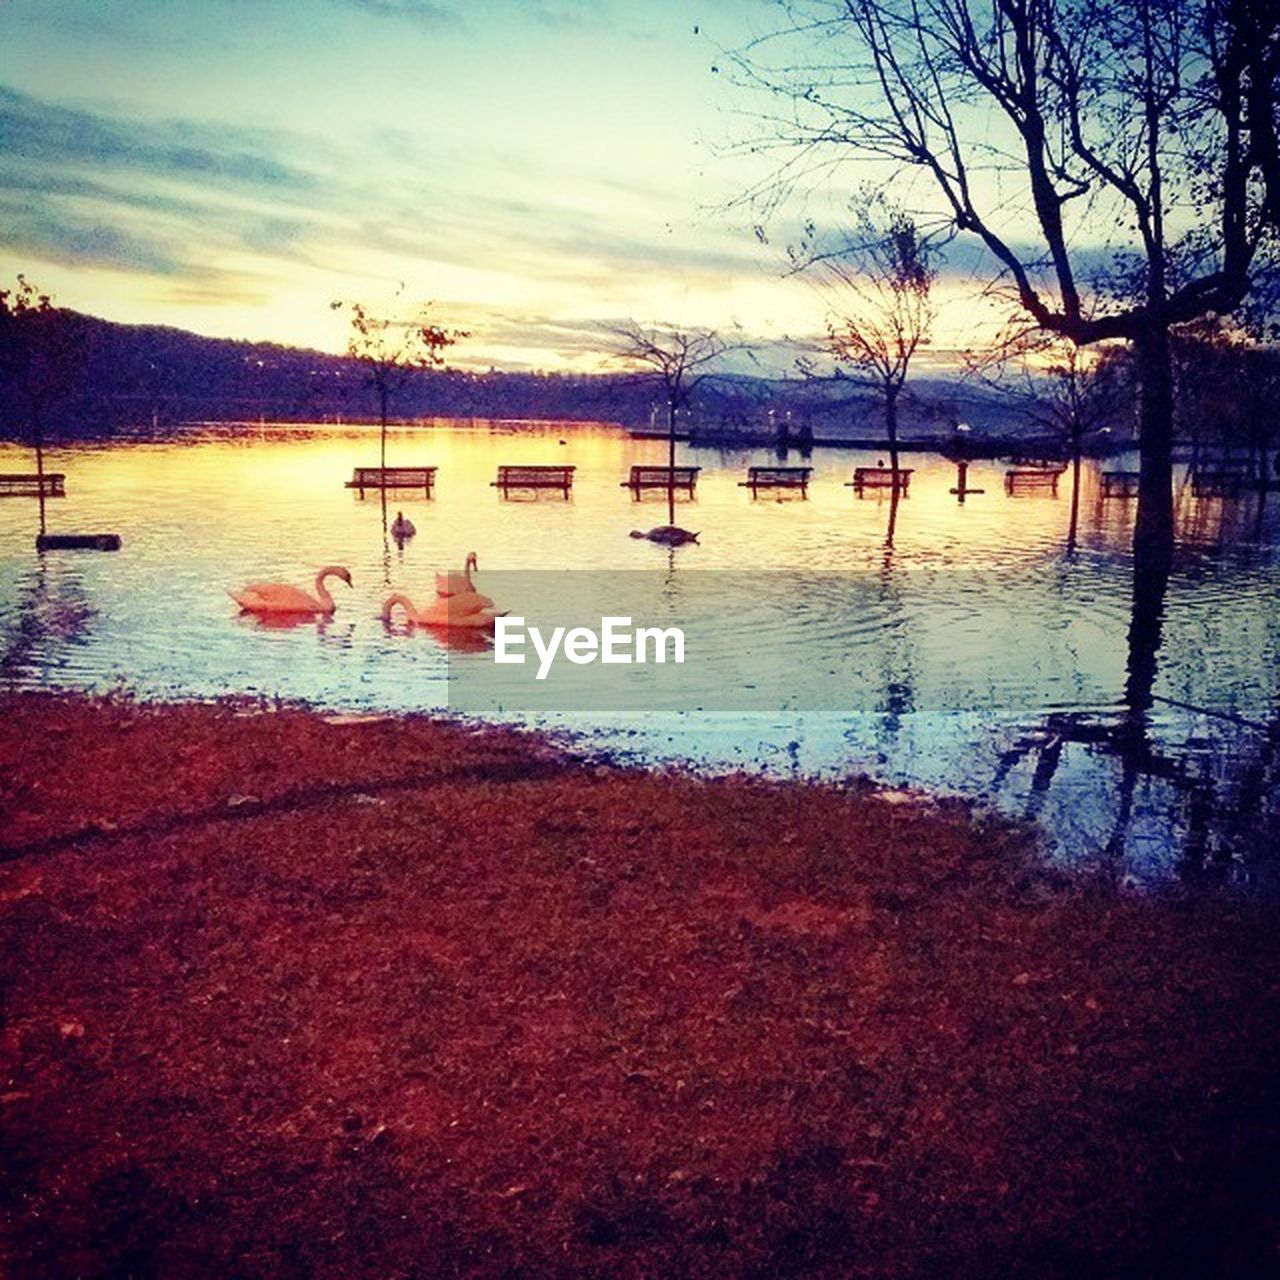 water, lake, reflection, sky, nature, no people, swimming pool, outdoors, tranquility, beauty in nature, swimming, scenics, floating on water, sunset, tree, swan, day, bird, animal themes